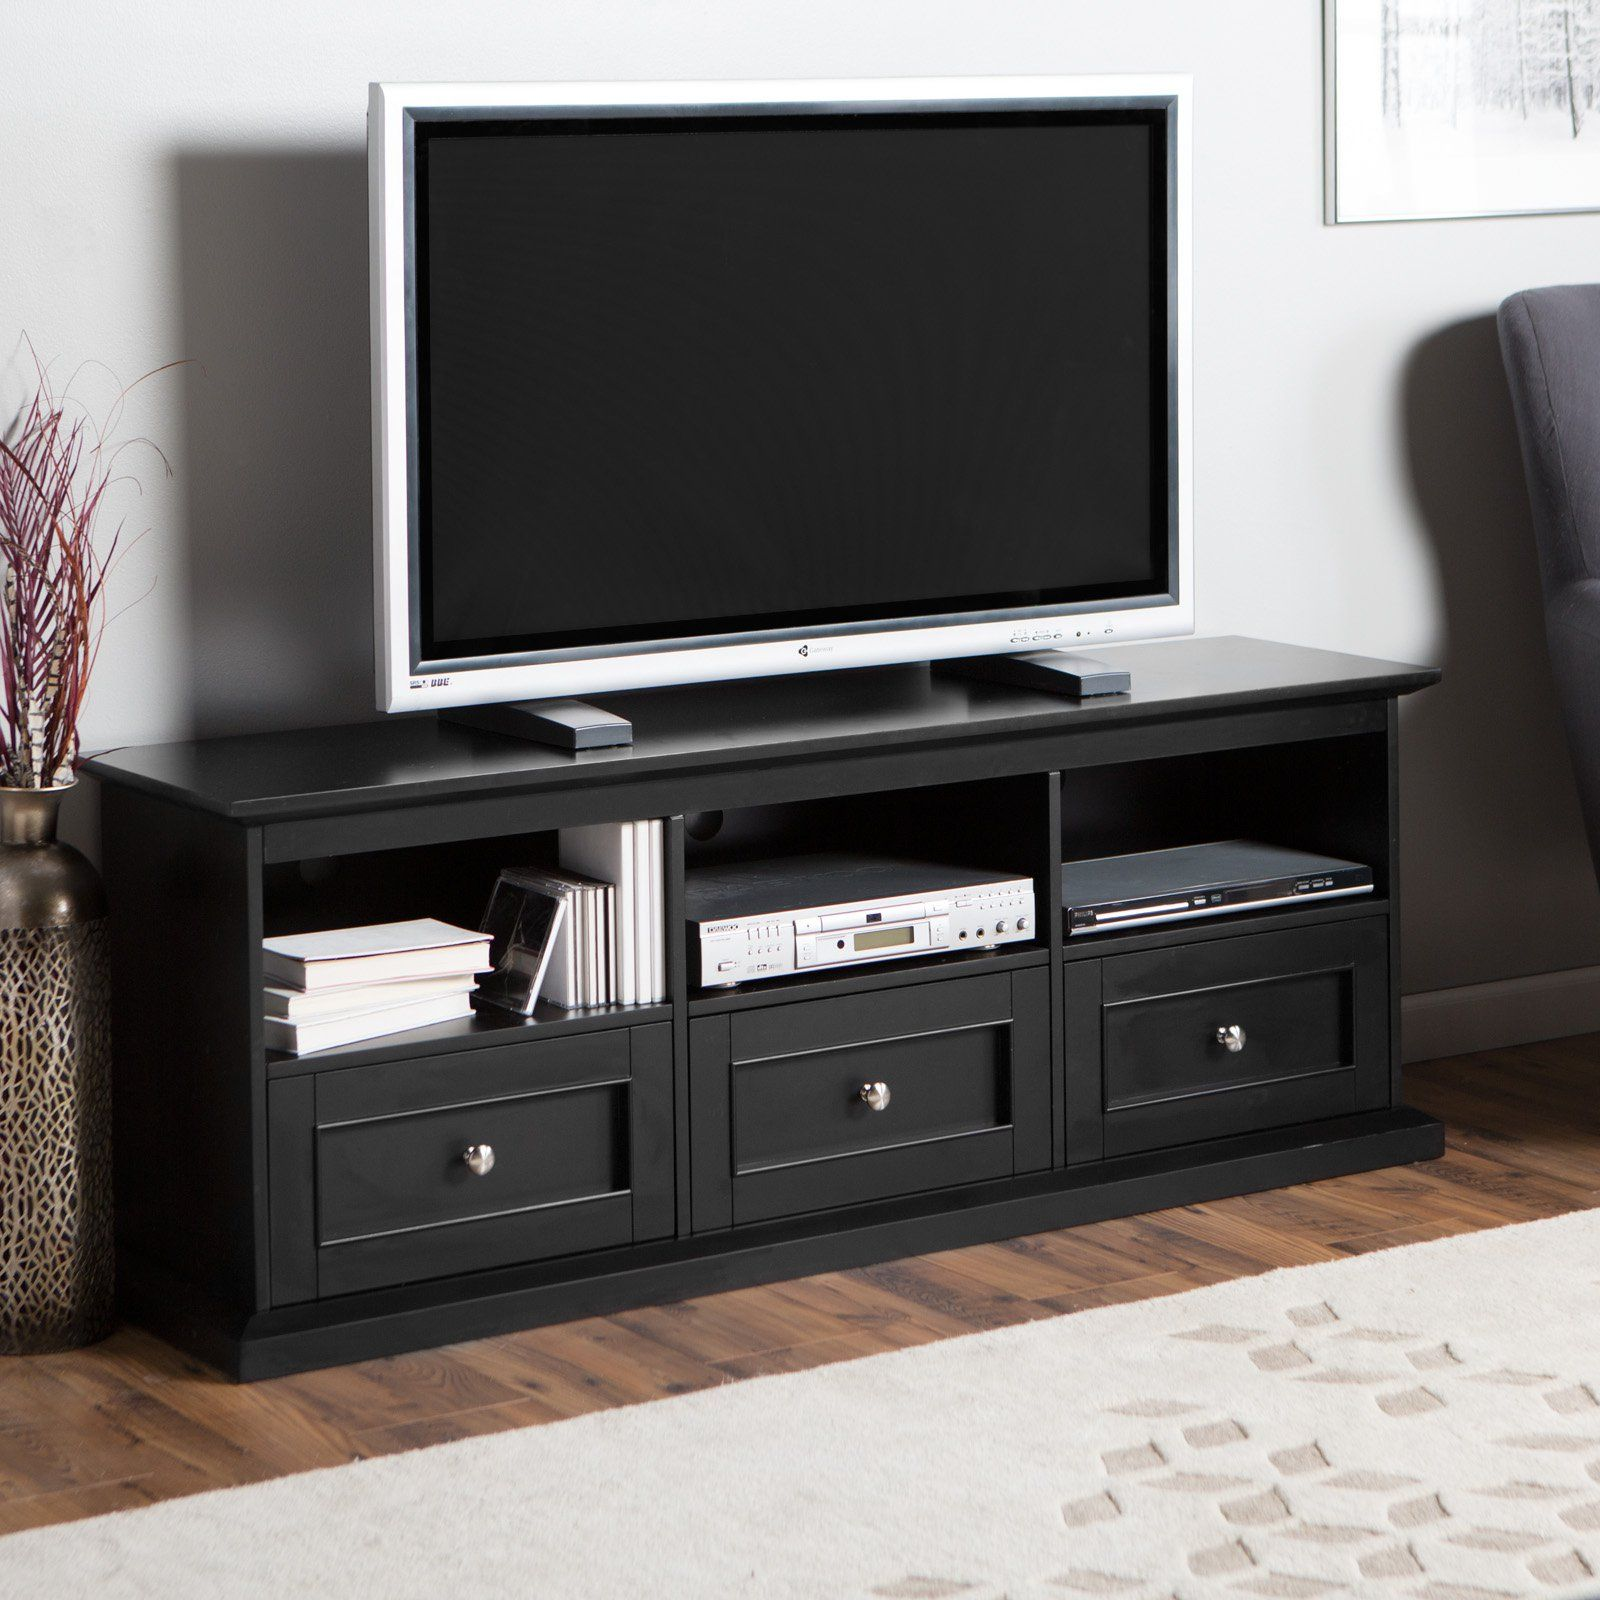 Belham Living Hampton Tv Stand With Drawers Black Get The